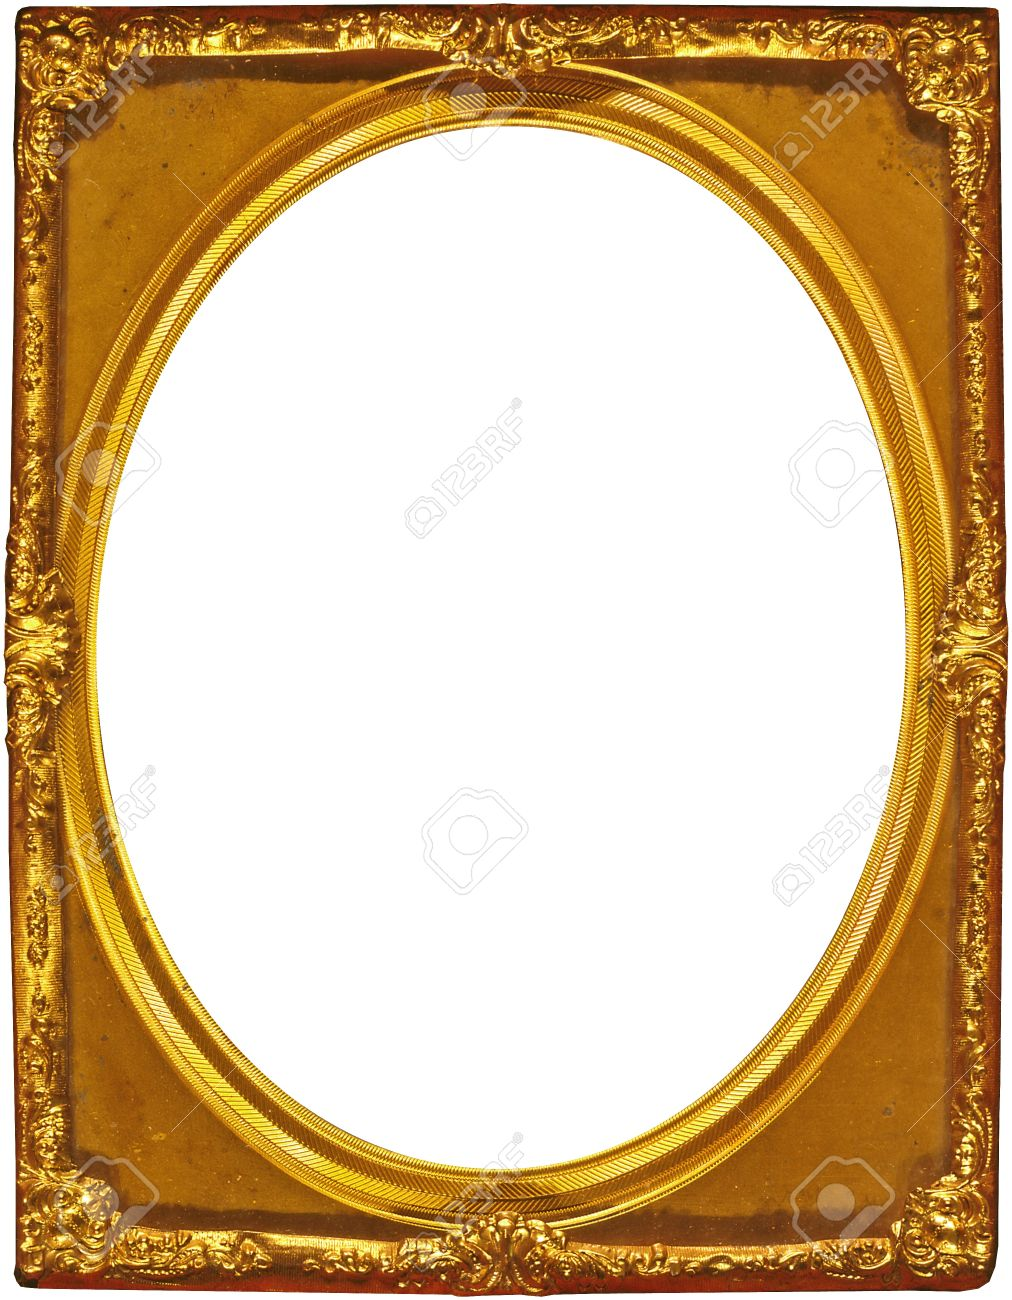 Gilded gold picture frame with oval cutout stock photo picture gilded gold picture frame with oval cutout stock photo 14329196 jeuxipadfo Images